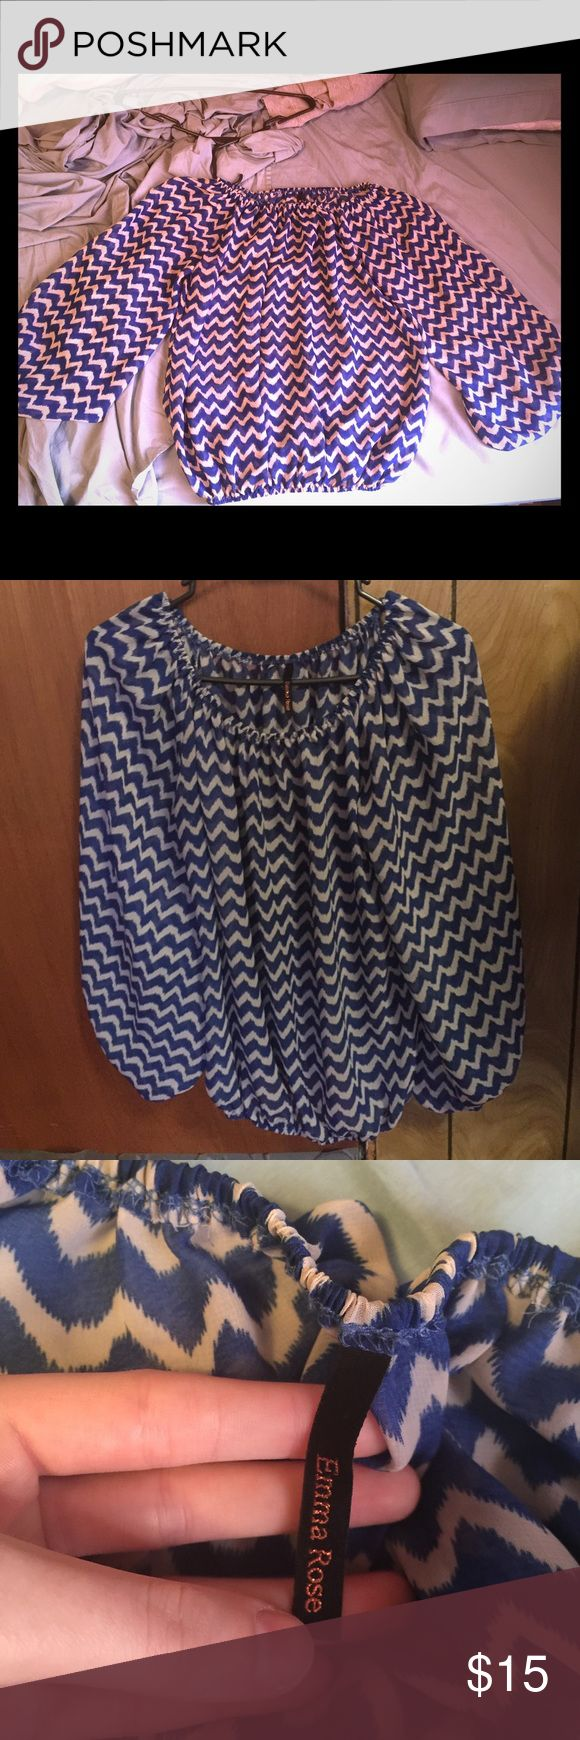 Loose Chevron Blouse •Loose Fit Chevron Blouse •VERY cute! •No Flaws, Has been worn once. •Size small. I also have this same shirt available in red in size medium. •Bundles get discounts🛍💋 ✖️NO TRADES✖️ •Questions/Offers Welcome💜 Tops Blouses